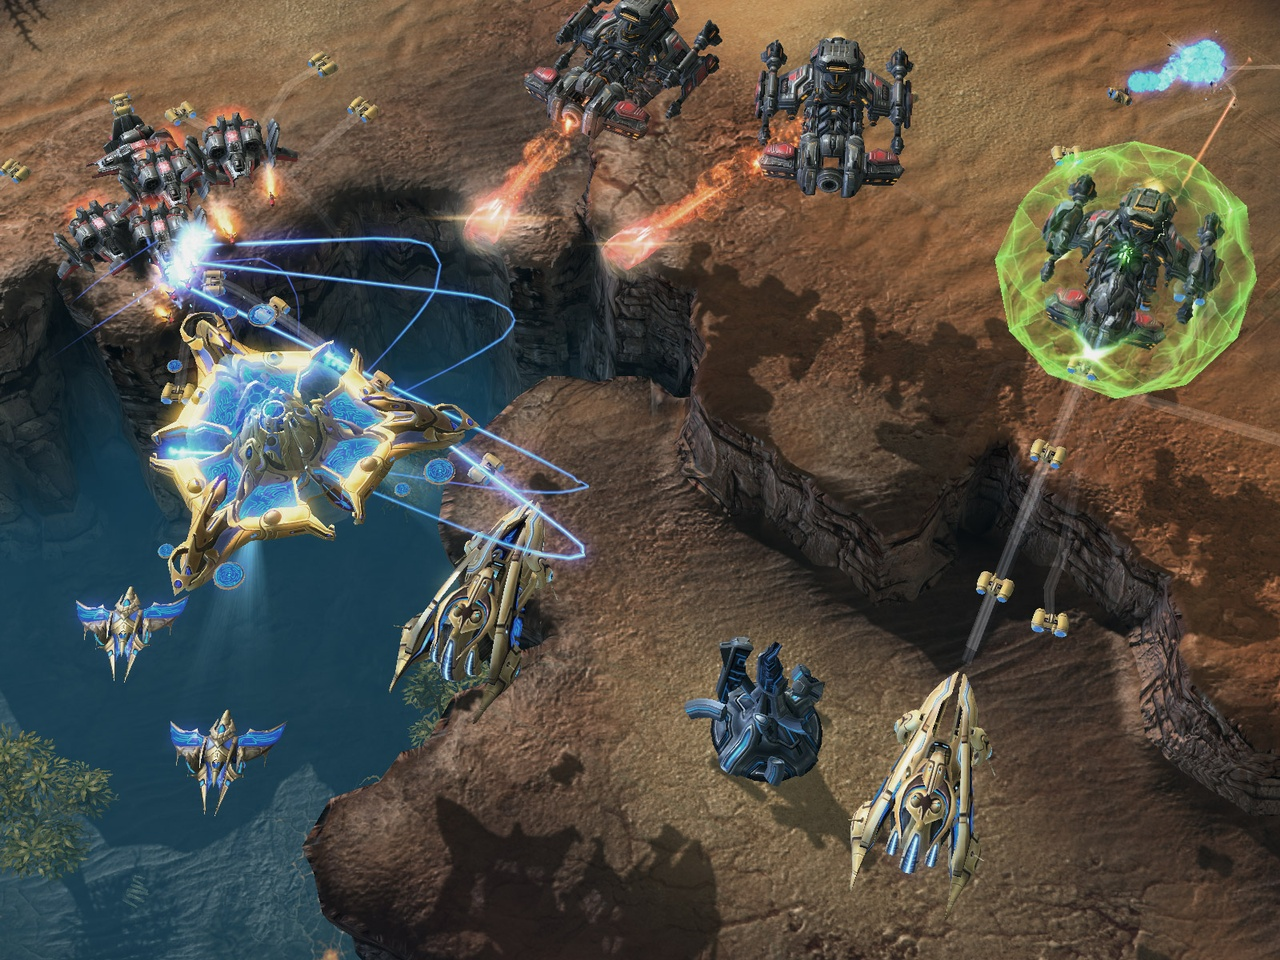 http://media.fatalgame.com/screen_large/starcraft-2-protoss-legacy-void-11344.jpg